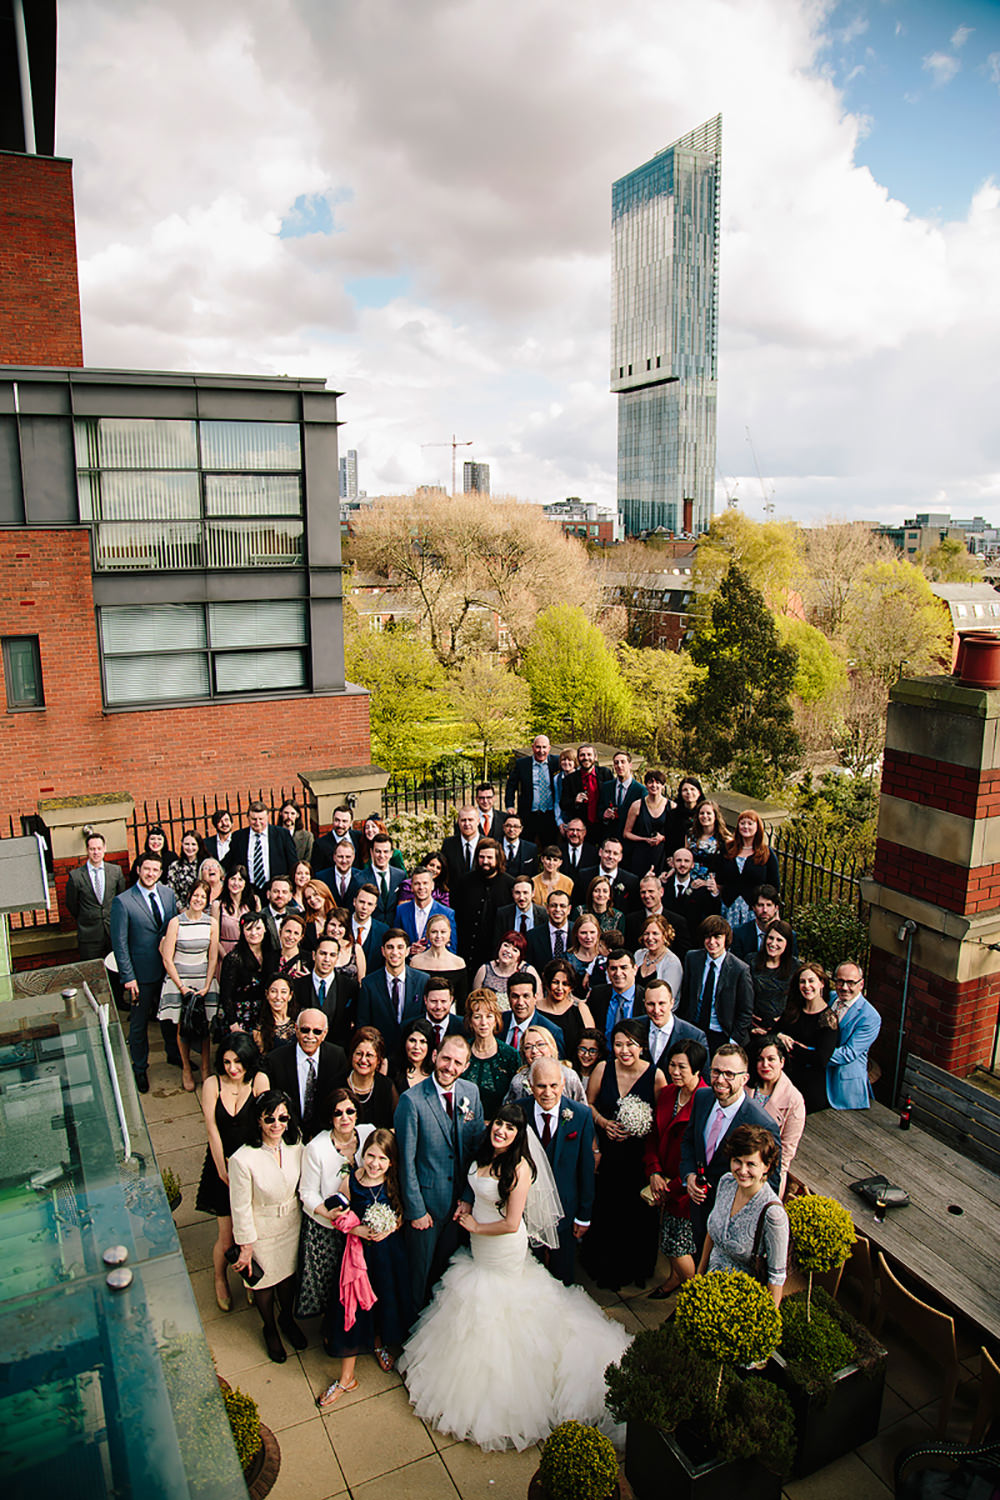 everybody together on the roof terrace overlooking beetham tower